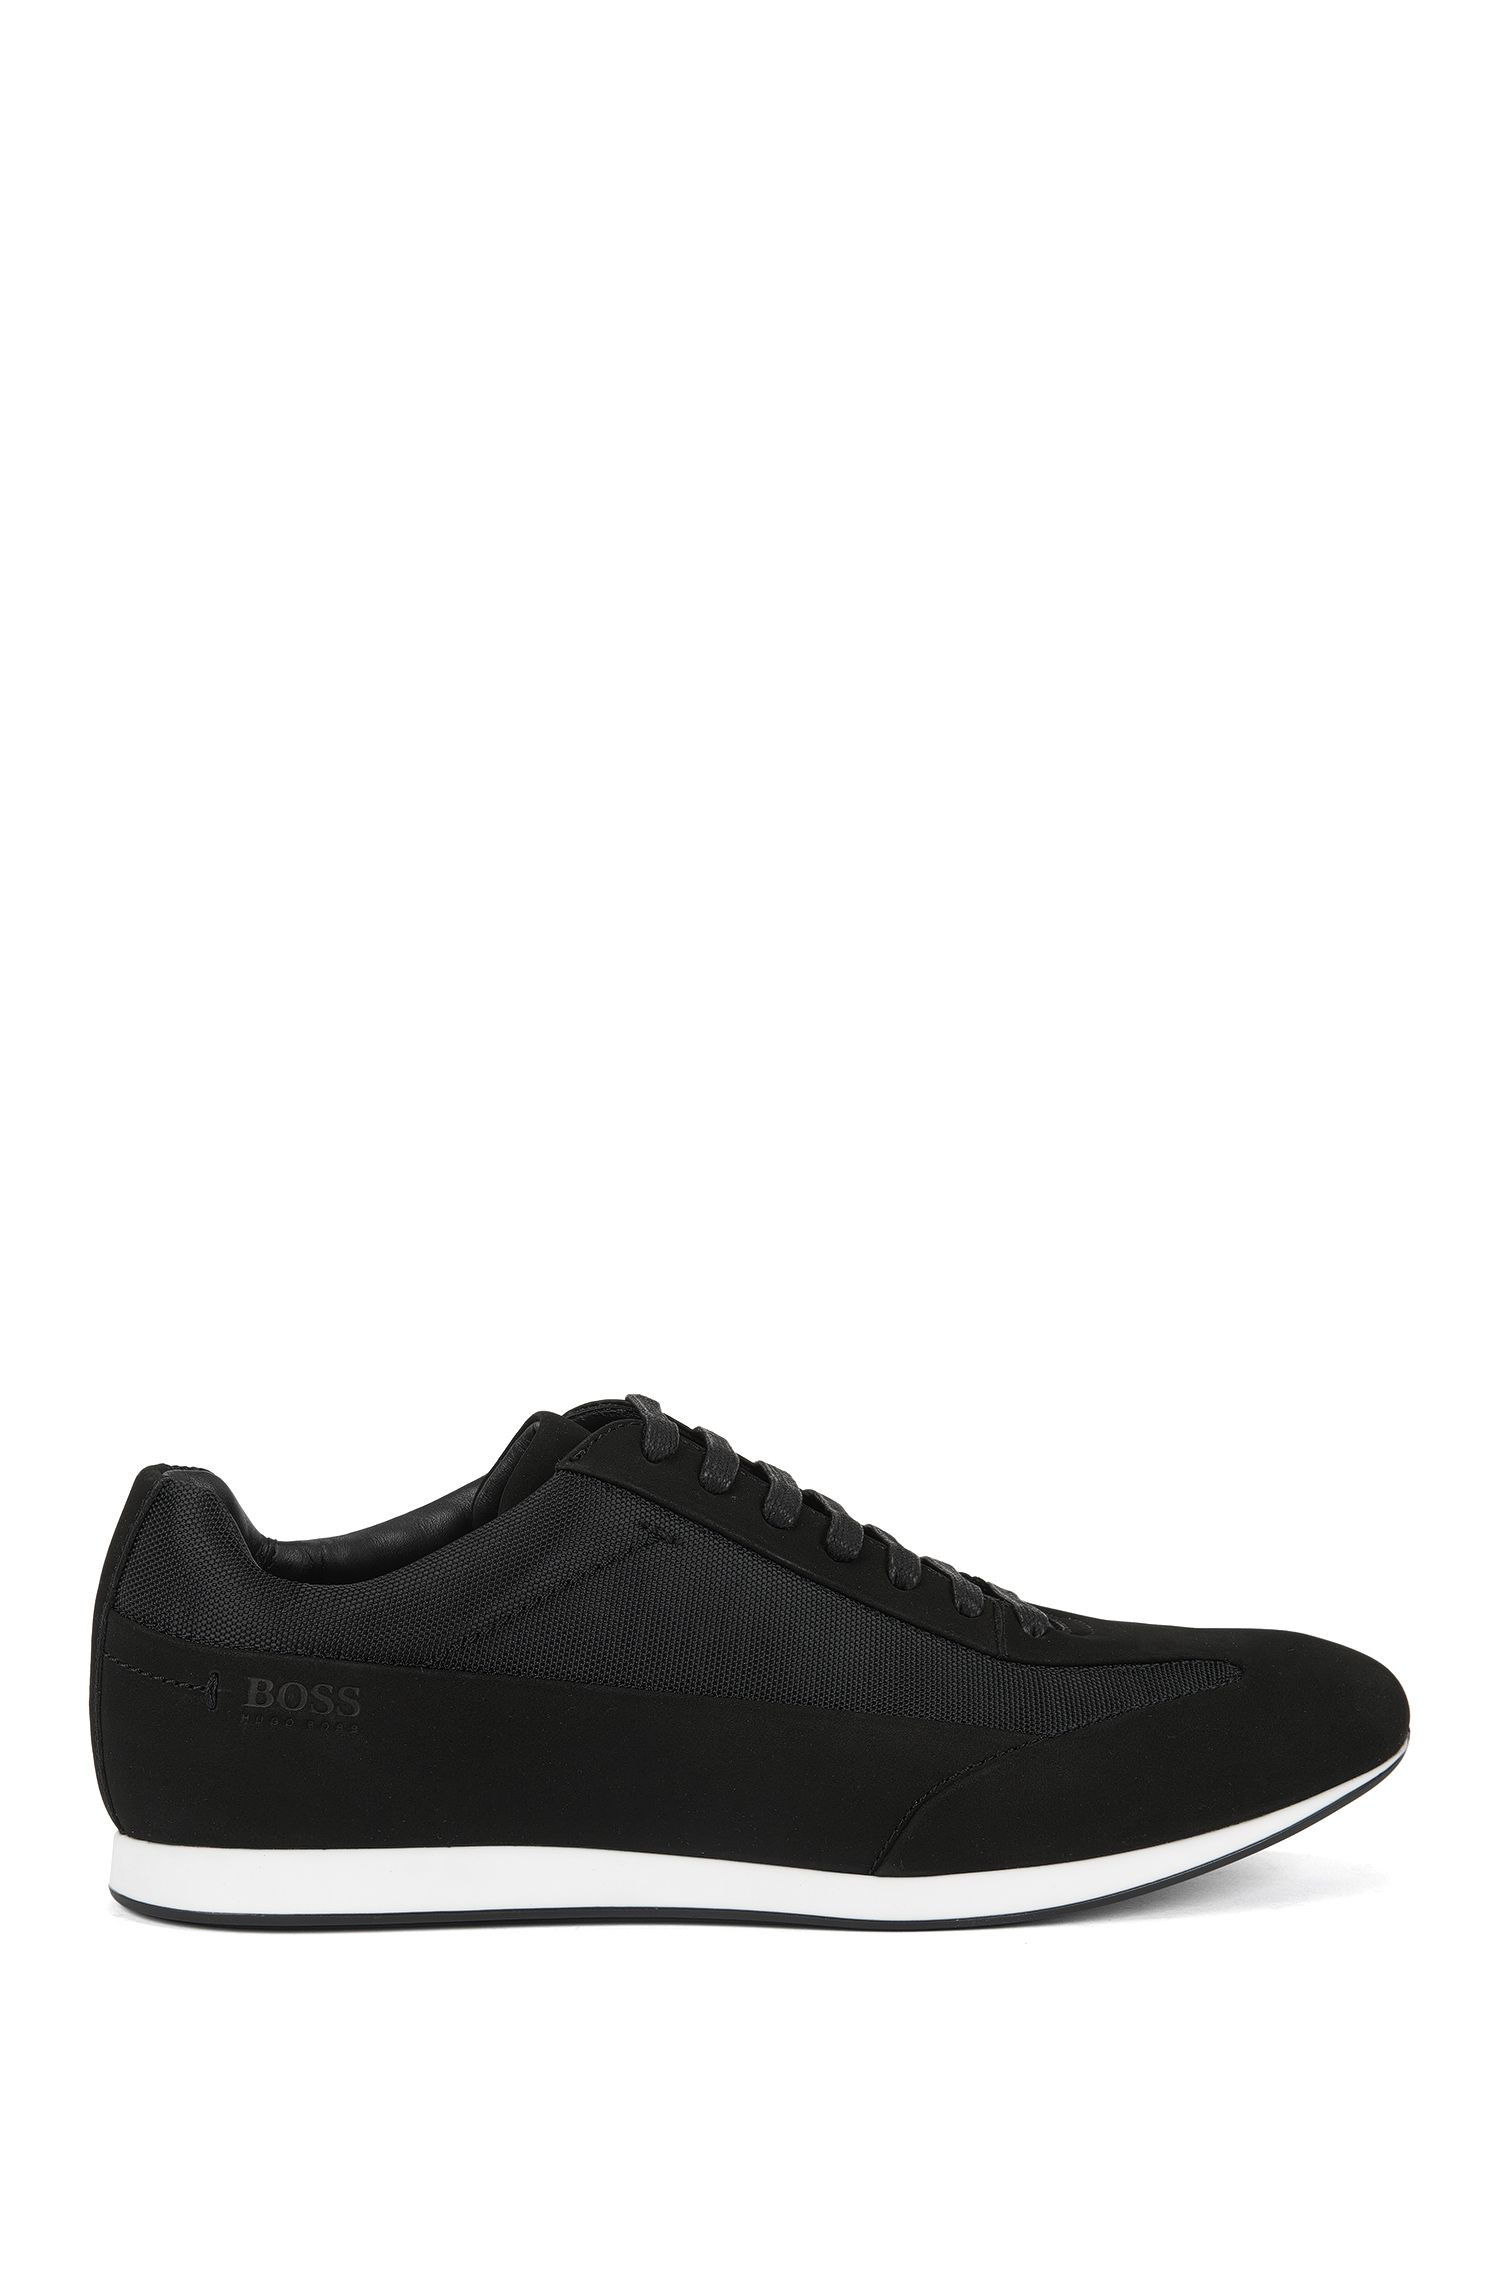 Lace-up leather trainers with textured panels